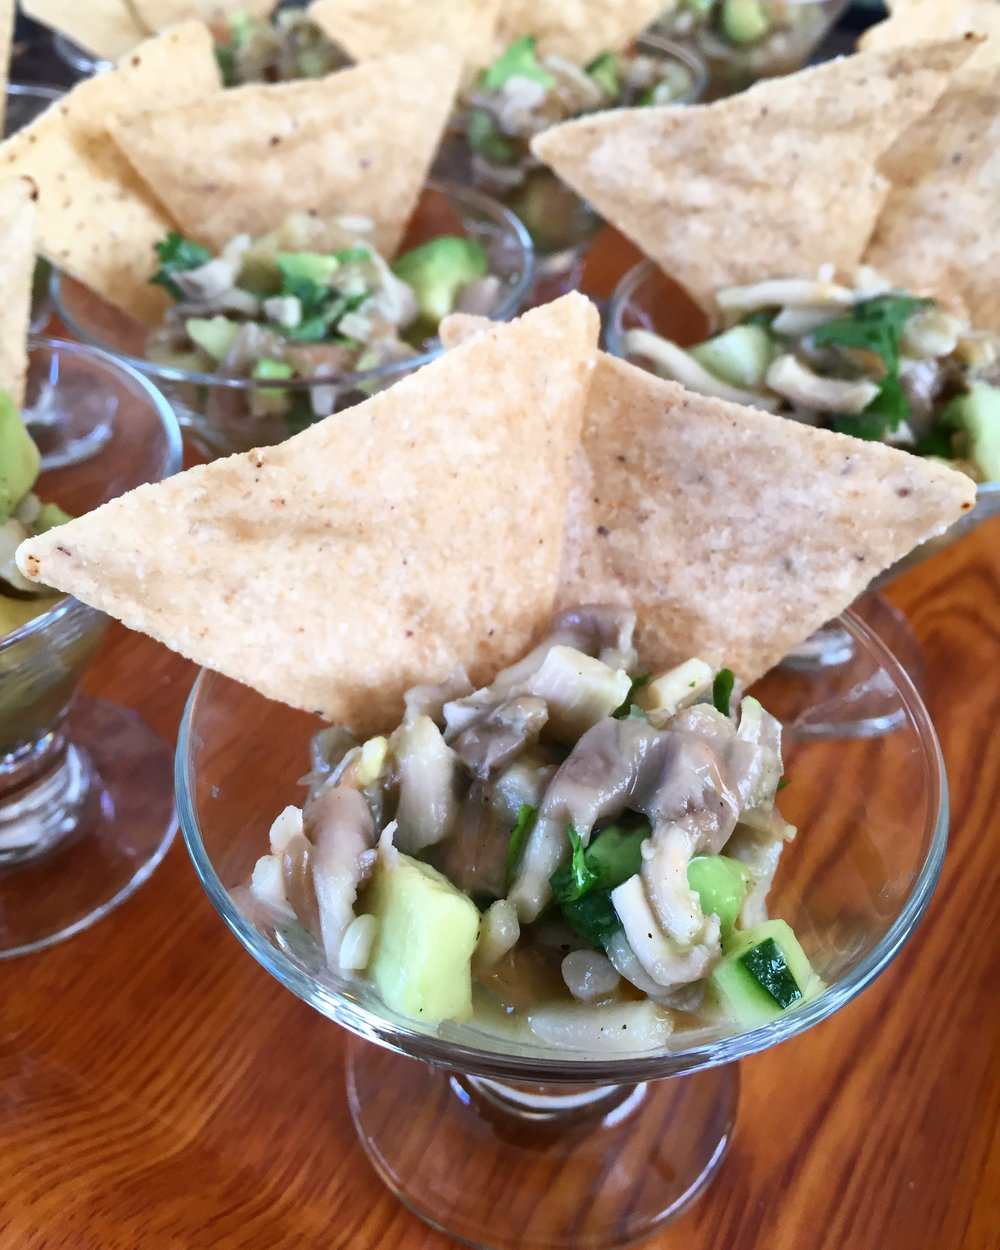 Oyster Mushroom Ceviche: A play on classic seafood ceviche with oyster mushrooms, cucumber, avocado, and pink grapefruit.